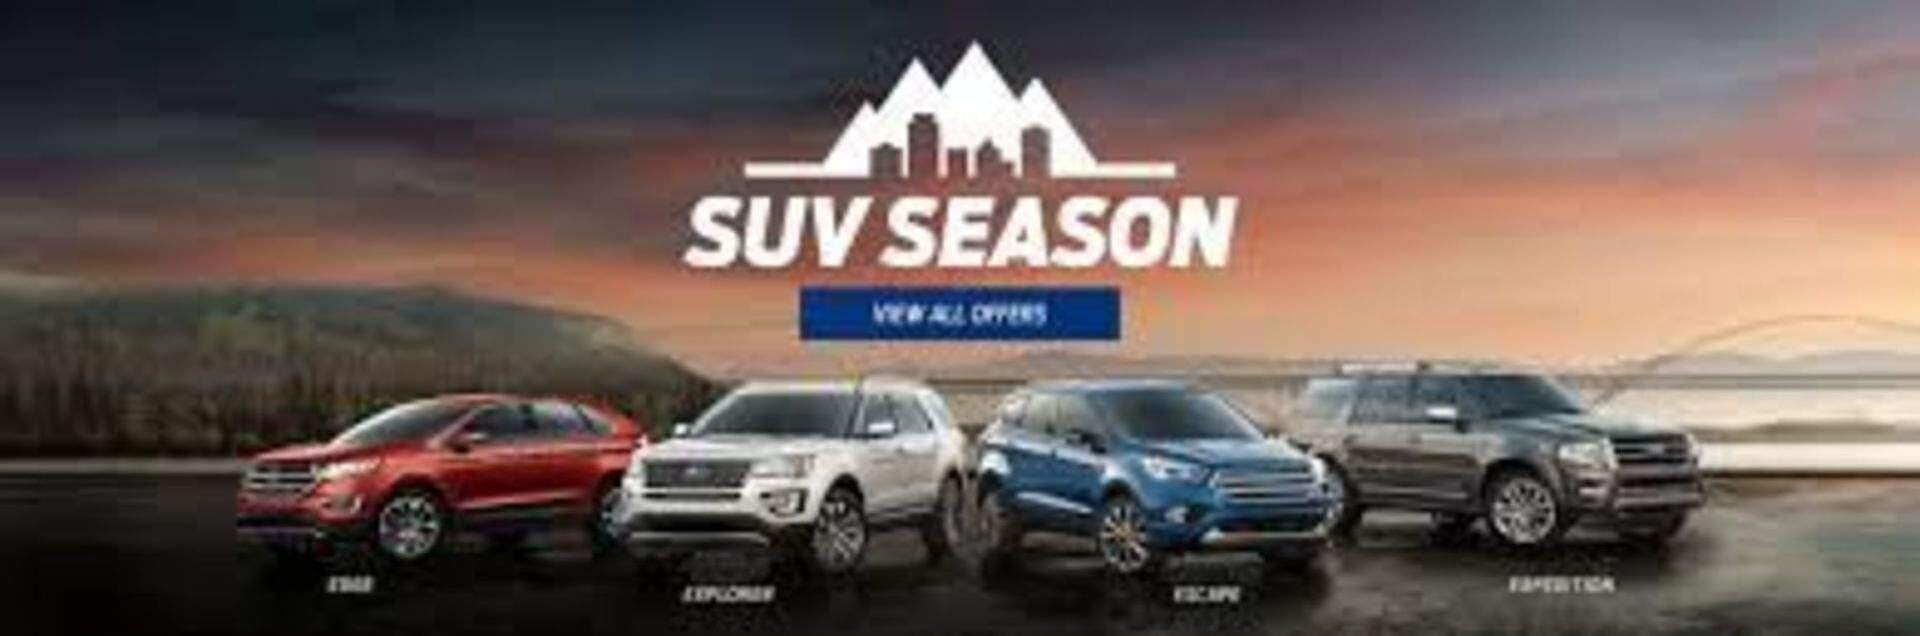 Ford SUV Season